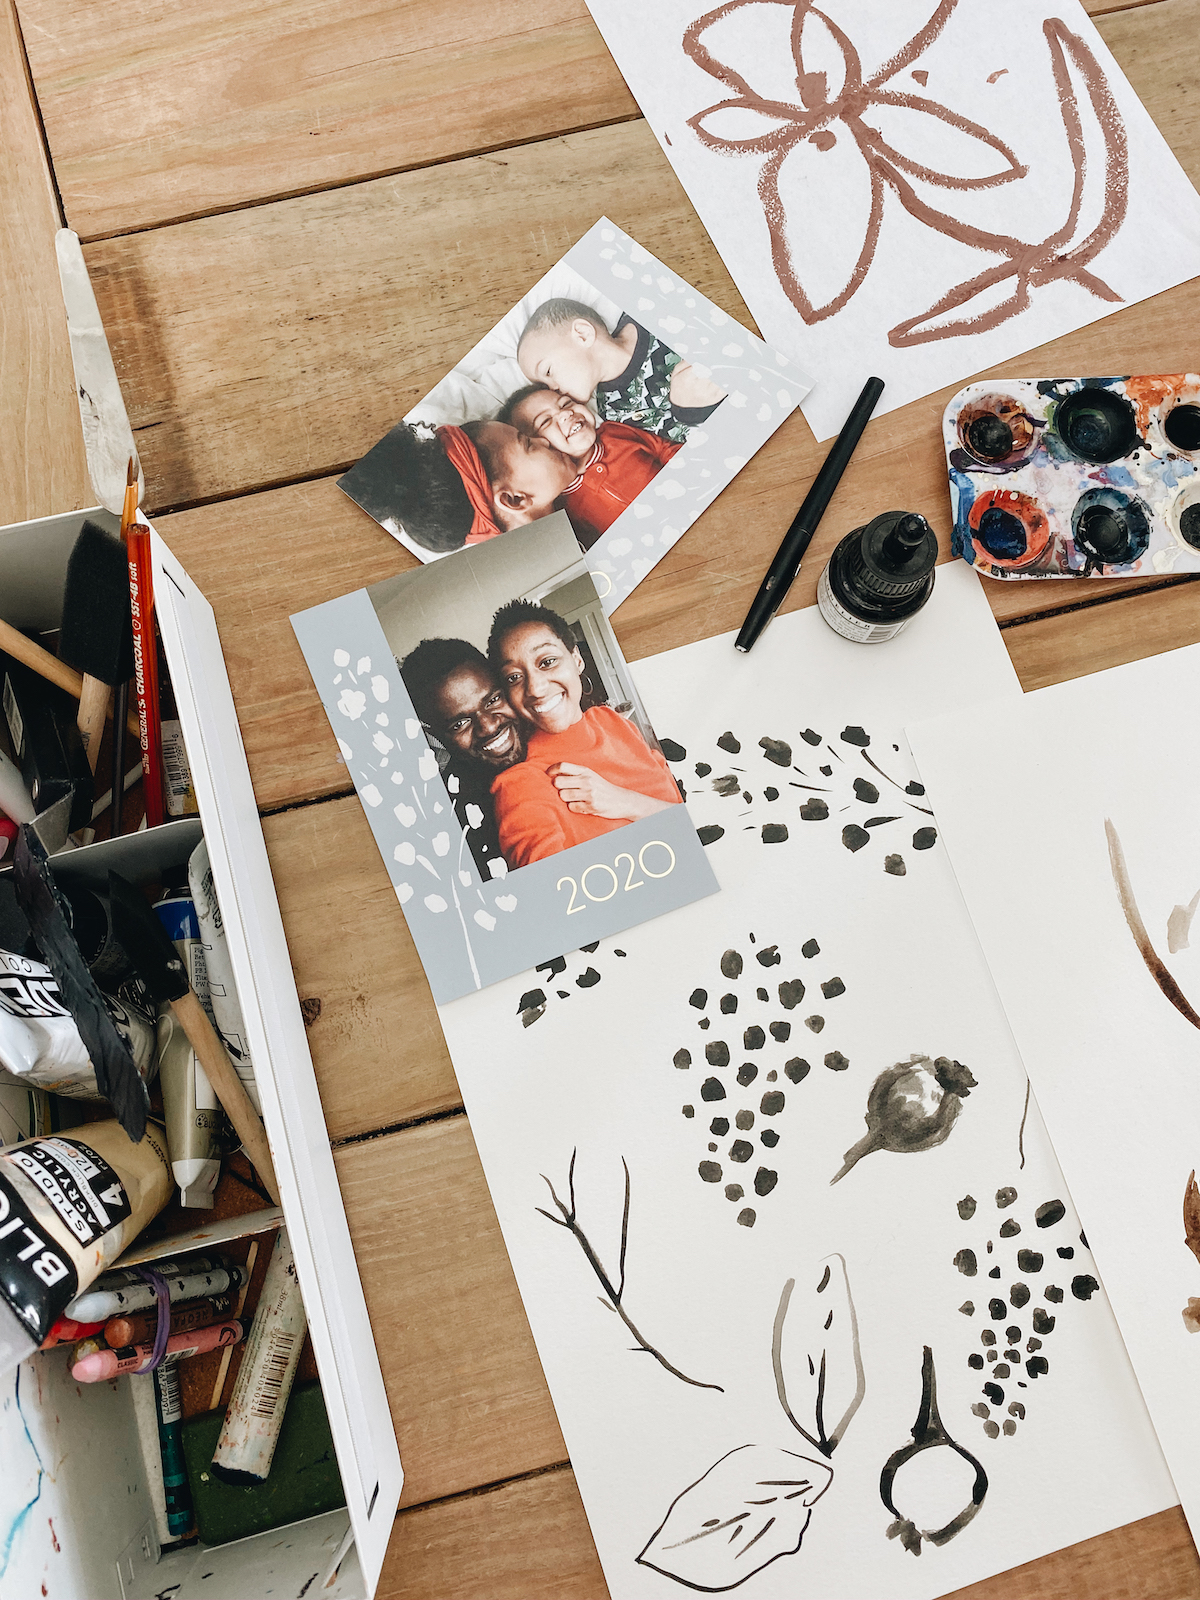 Holiday cards and drawings spread out on a studio table with art supplies